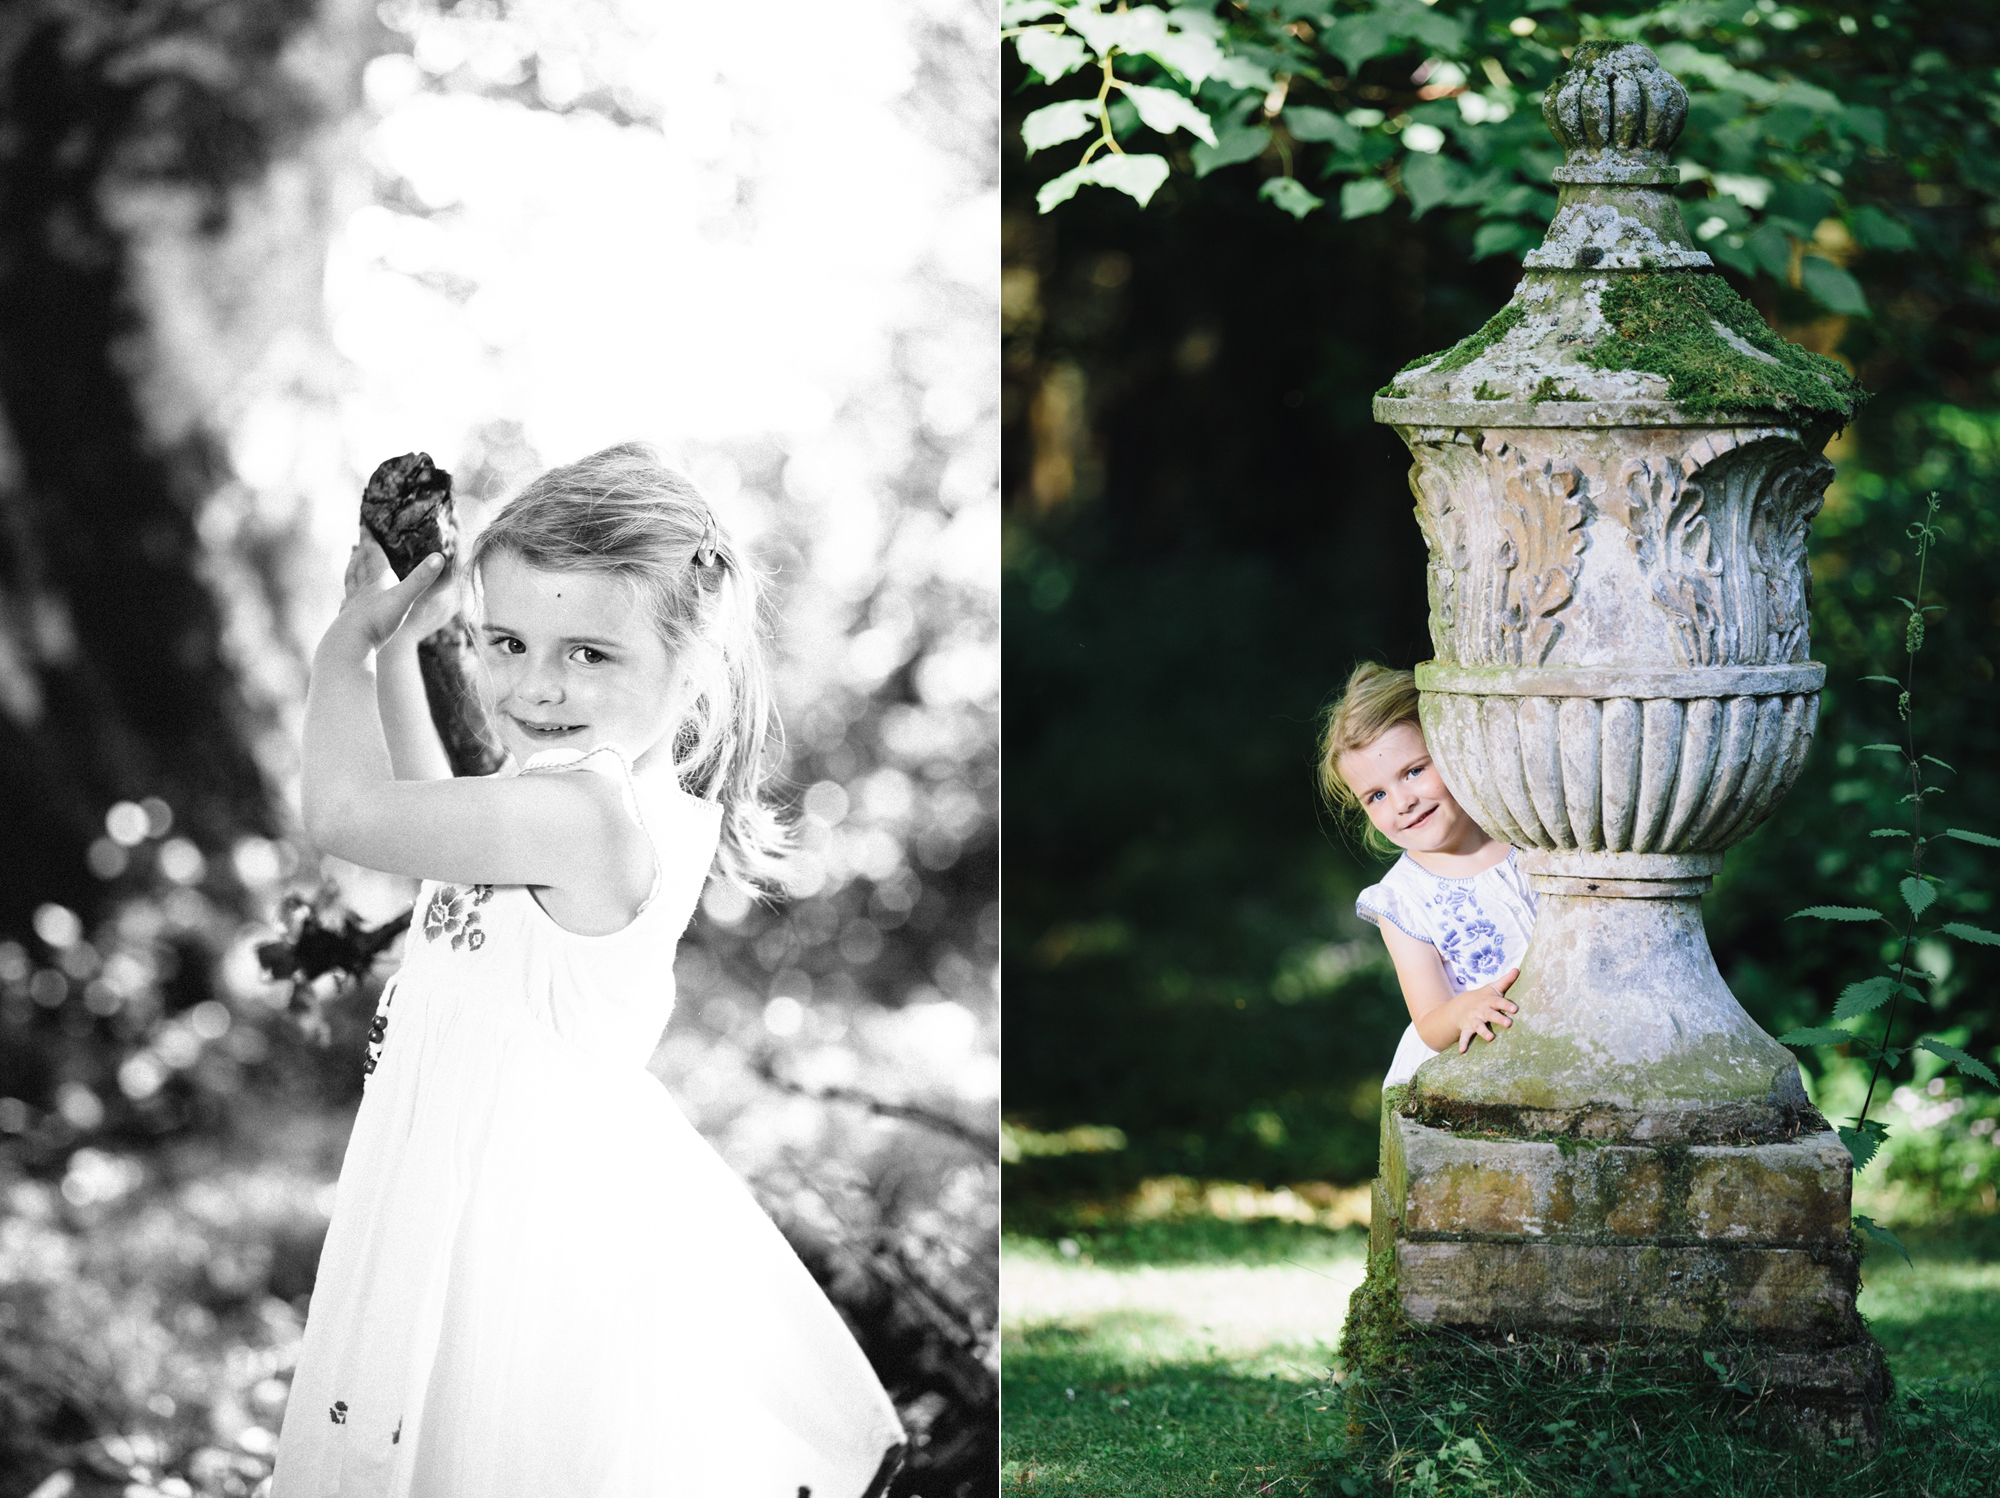 children and family lifestyle and portrait photographer London, Cumbria . UK